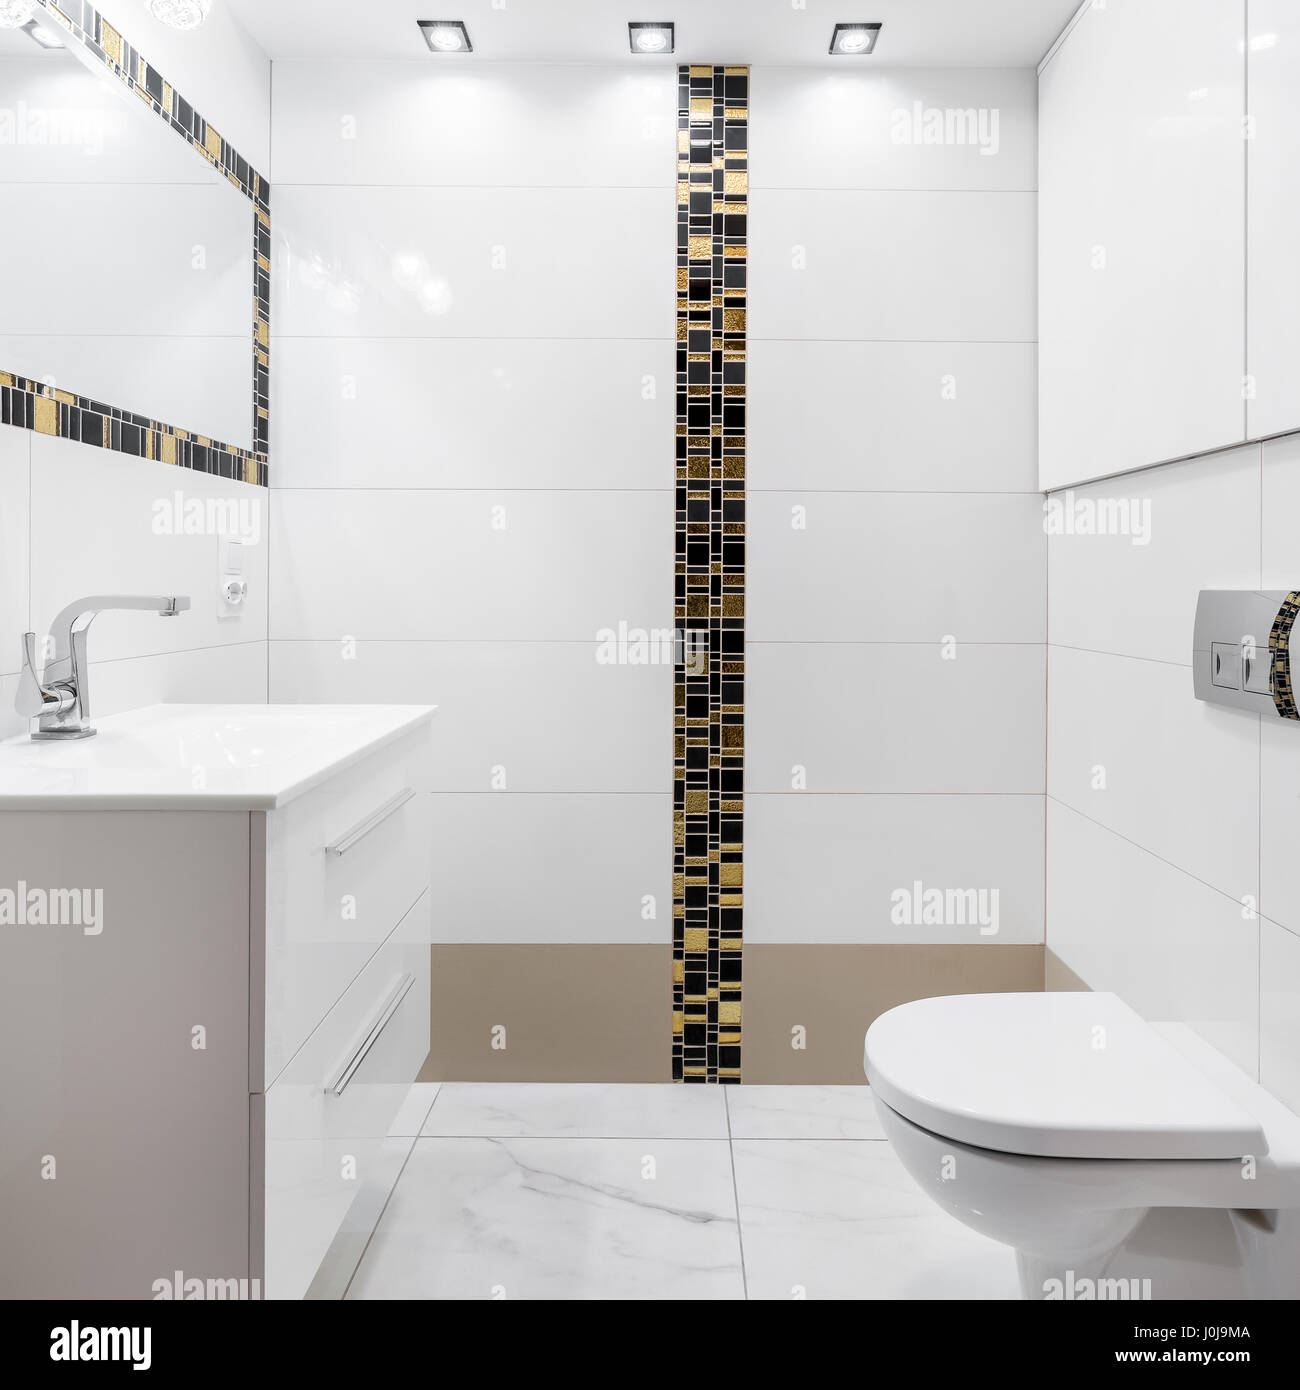 Luxury designed bathroom with modern ceramic tiles and rectangular luxury designed bathroom with modern ceramic tiles and rectangular mirror dailygadgetfo Images